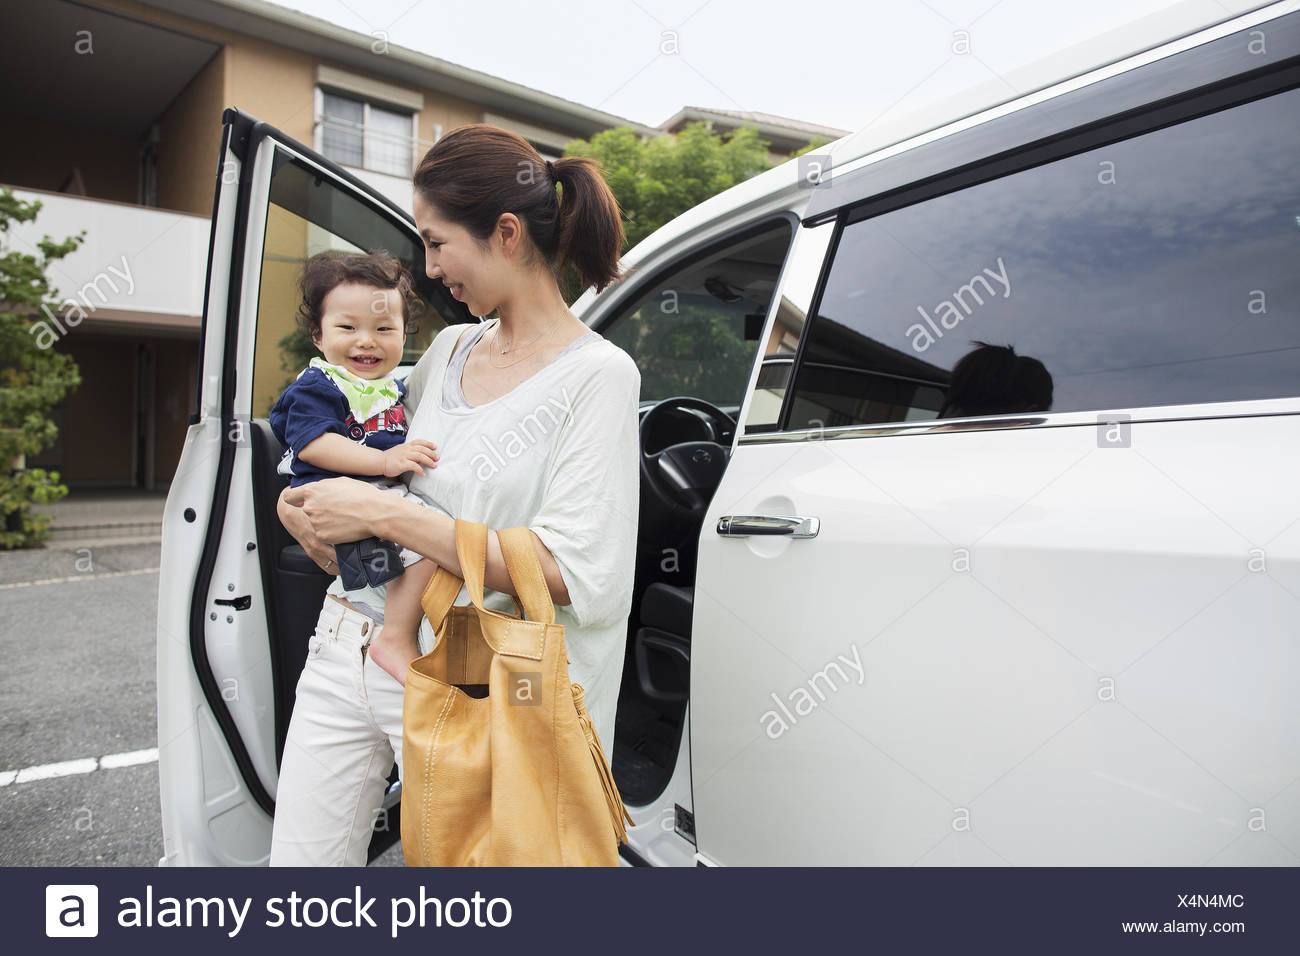 Mother carrying her baby boy by their car. - Stock Image